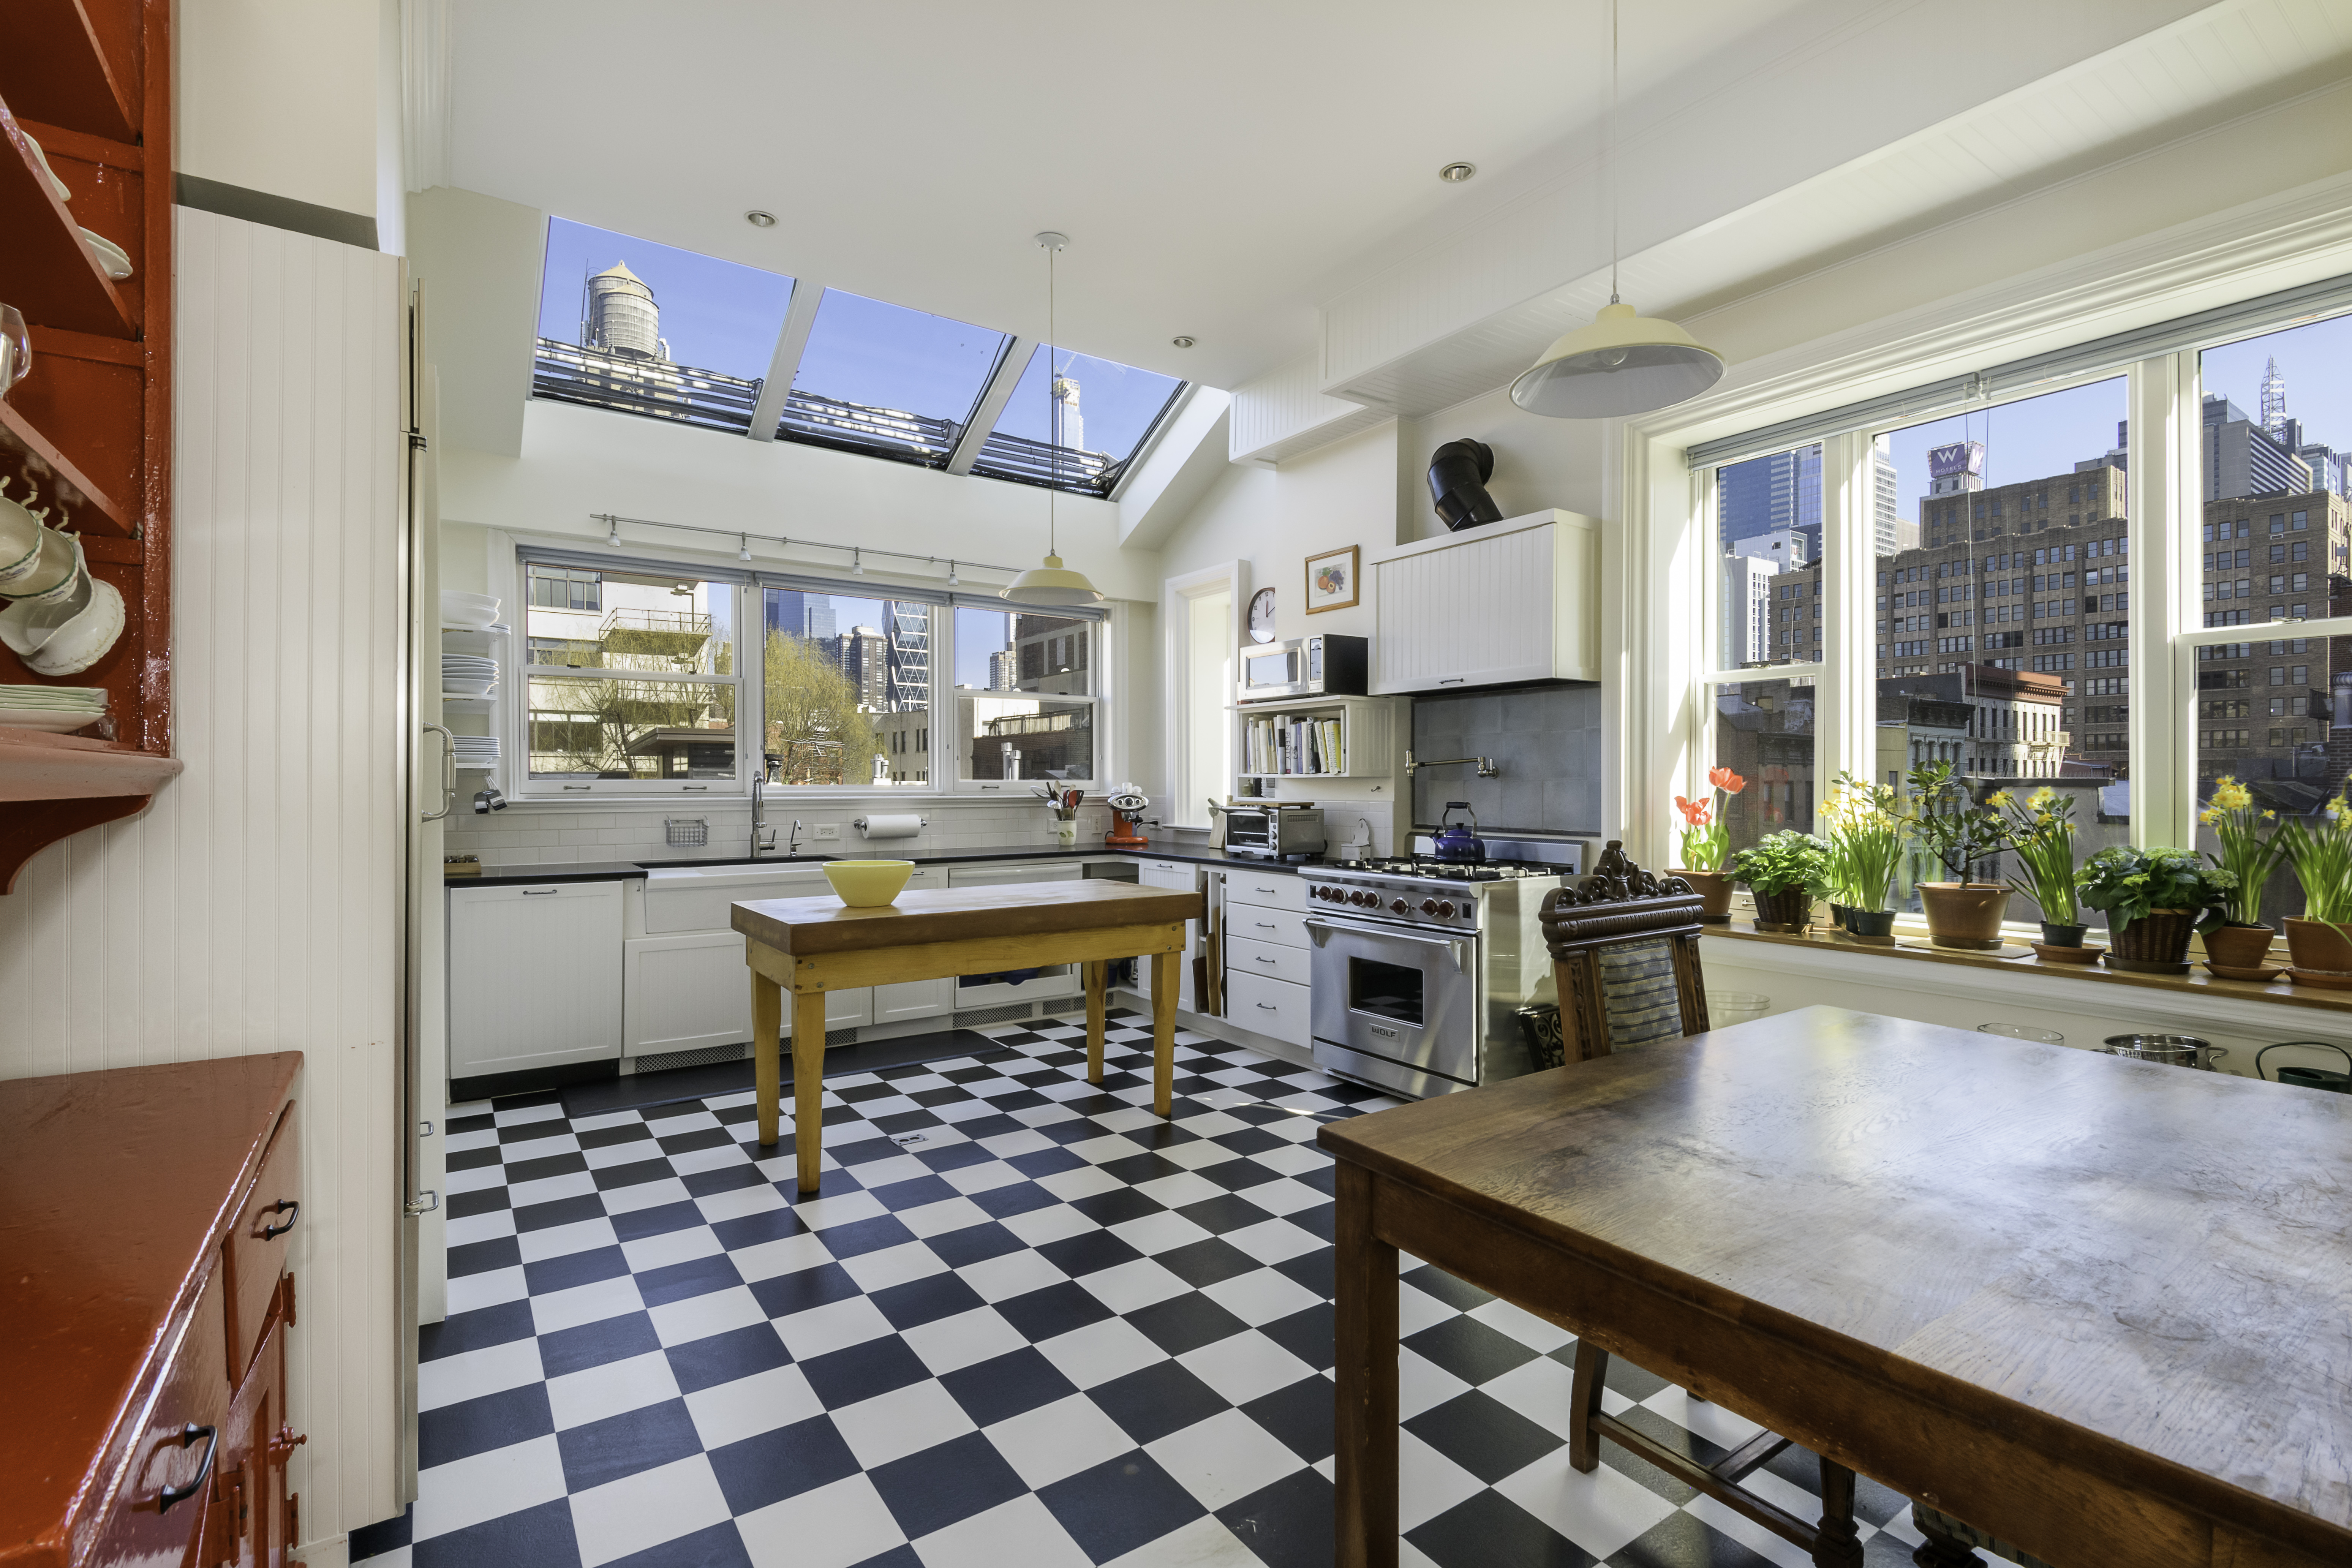 A large and bright kitchen features a black and white check floor, white cabinets, a huge skylight, and many windows overlooking the rooftops of Hell's Kitchen.